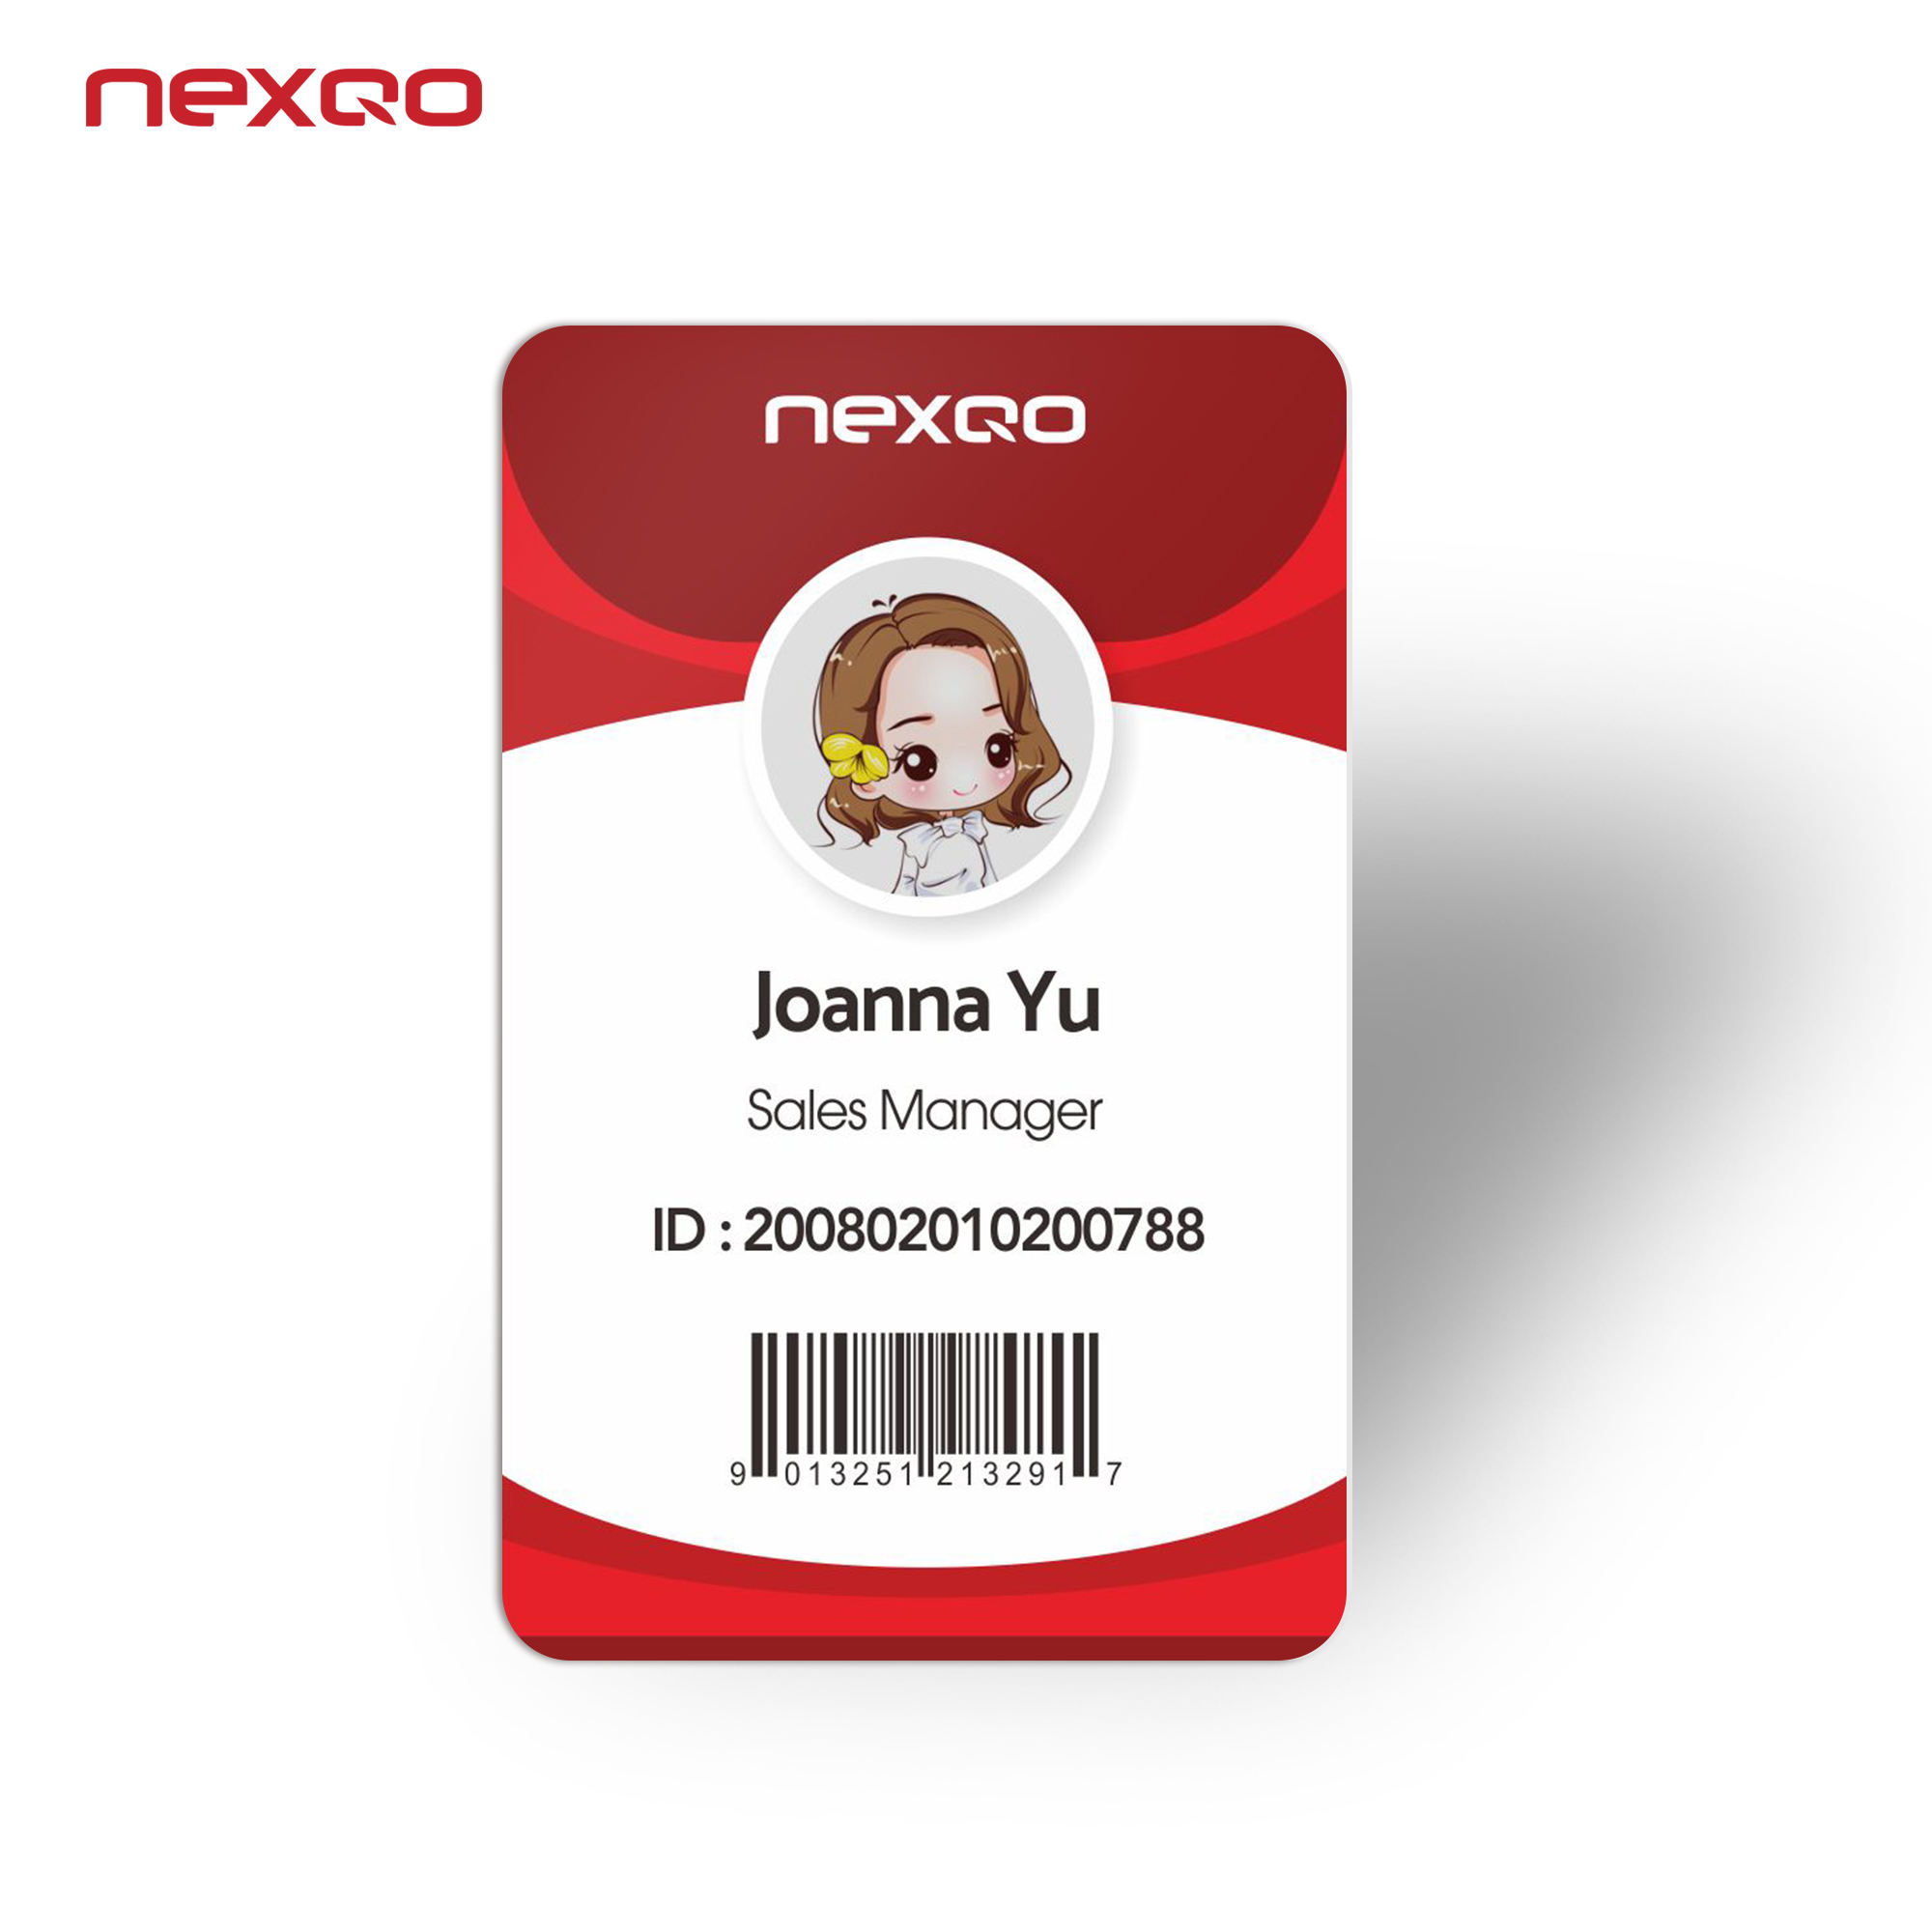 S0011 Hot Selling High Quality Full Color Printing PVC Hotel Employee ID Card Manufacturer from China